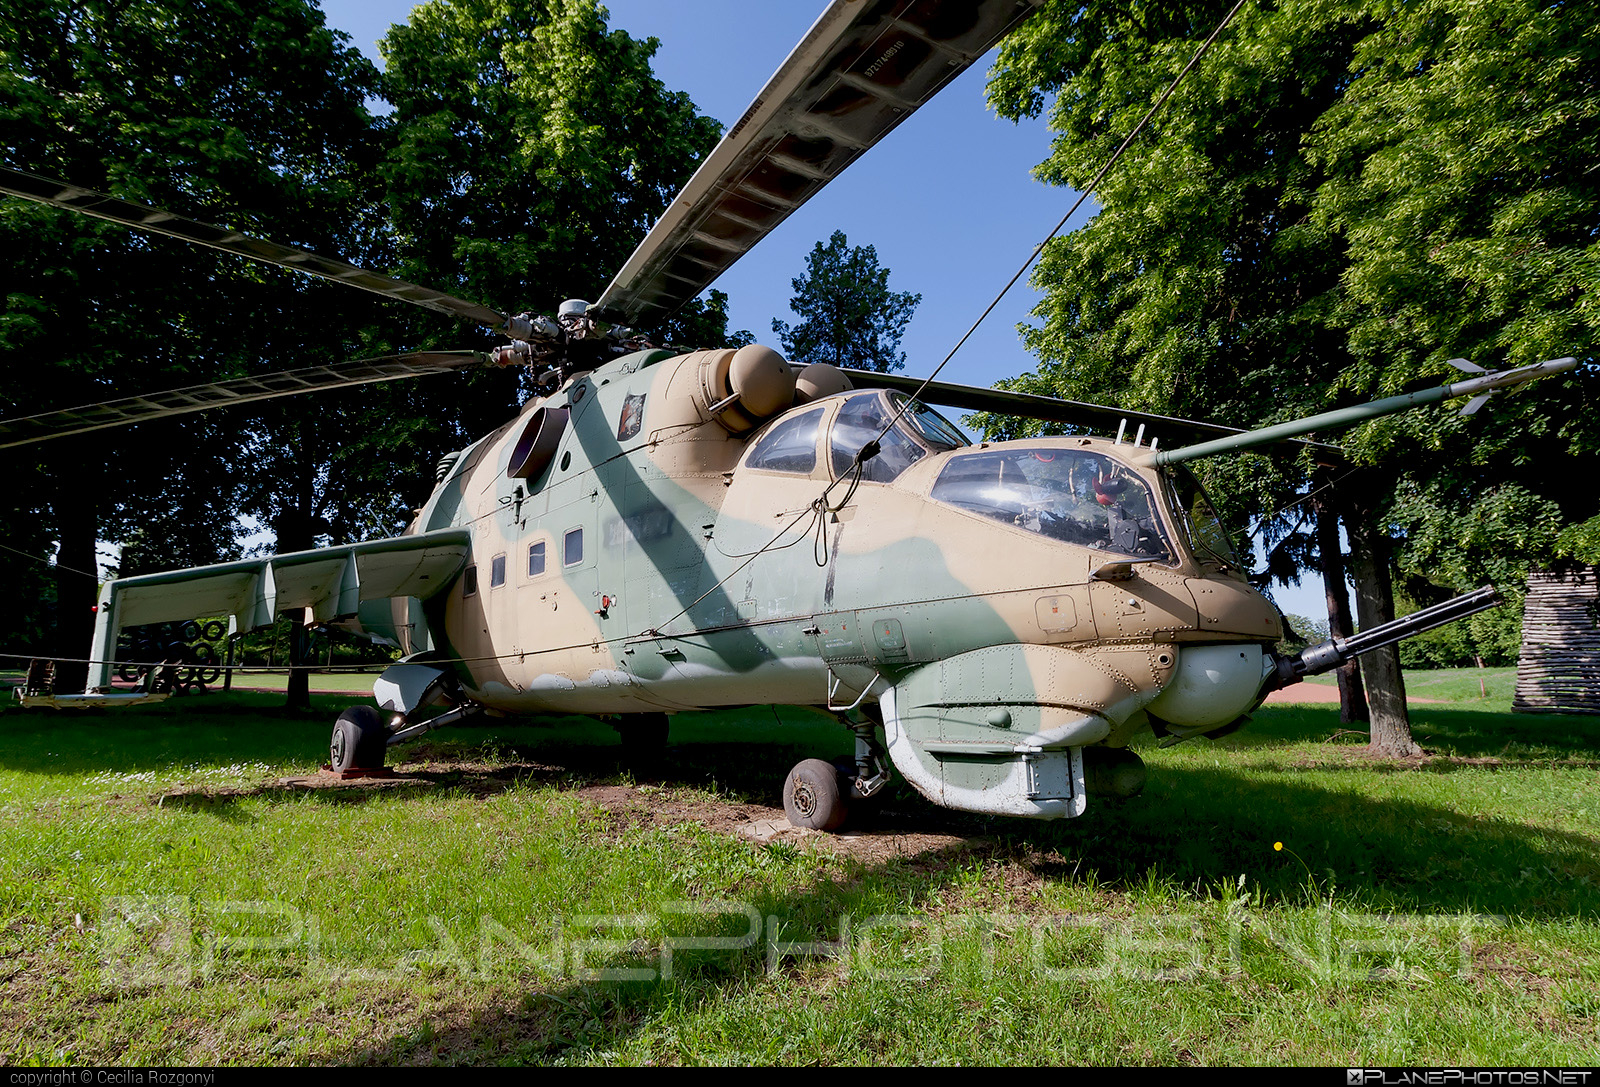 Mil Mi-24D - 118 operated by Magyar Légierő (Hungarian Air Force) #hungarianairforce #magyarlegiero #mi24 #mi24d #mil #mil24 #mil24d #milhelicopters